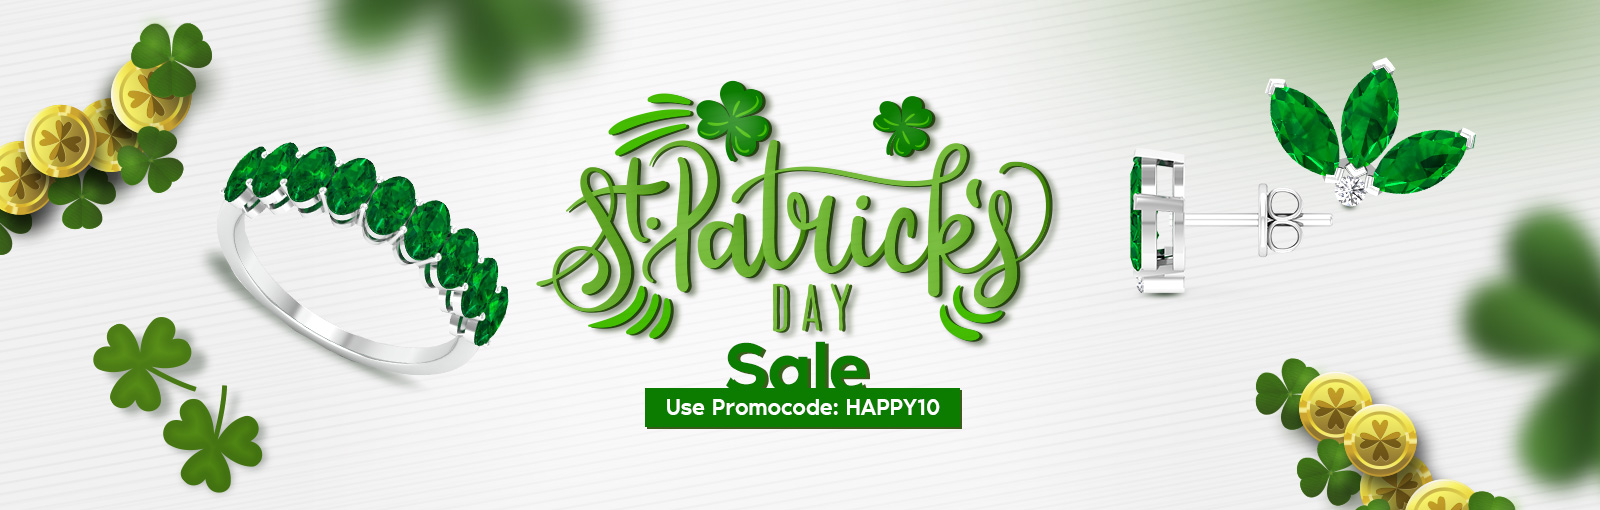 St Patrick's Day Jewelry Collection